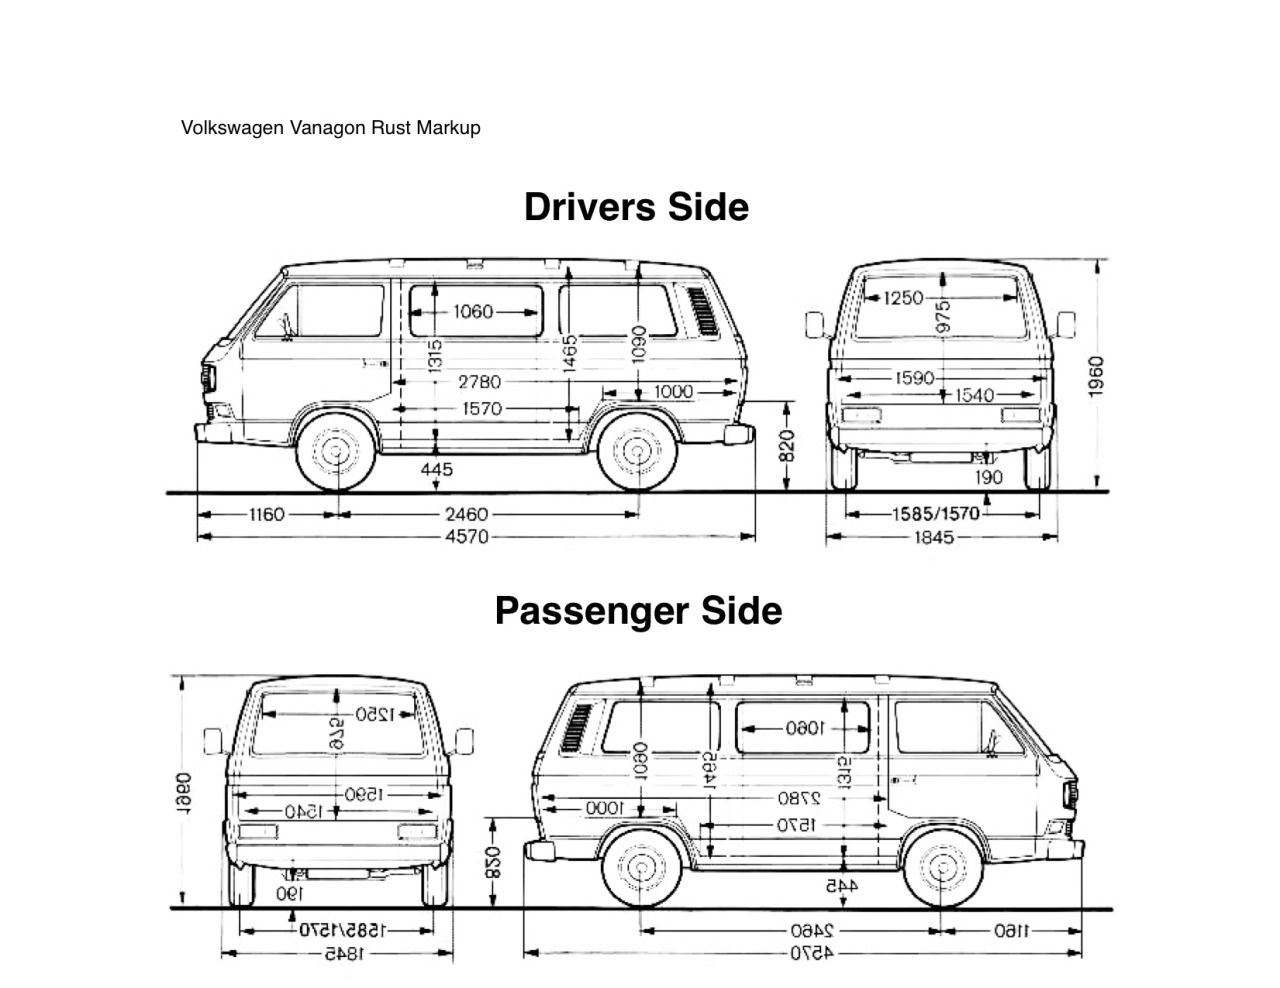 vw vanagon rust diagram track the rust or damage to your vanagon body  [ 1280 x 988 Pixel ]